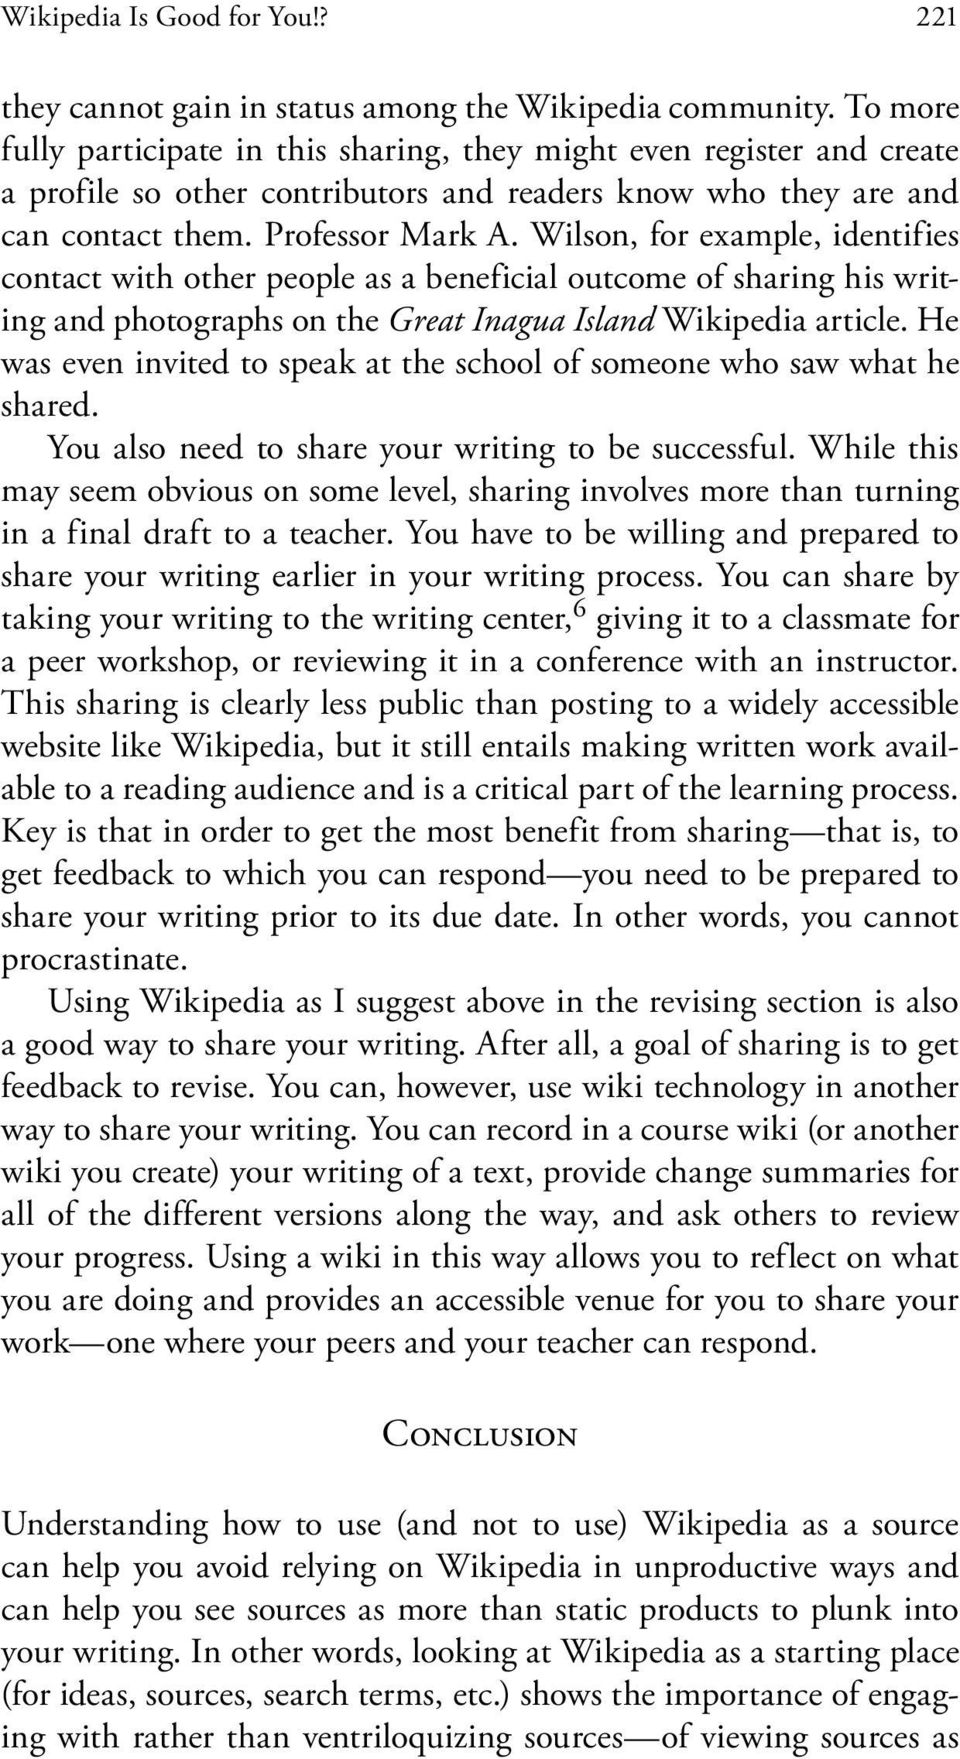 Wilson, for example, identifies contact with other people as a beneficial outcome of sharing his writing and photographs on the Great Inagua Island Wikipedia article.